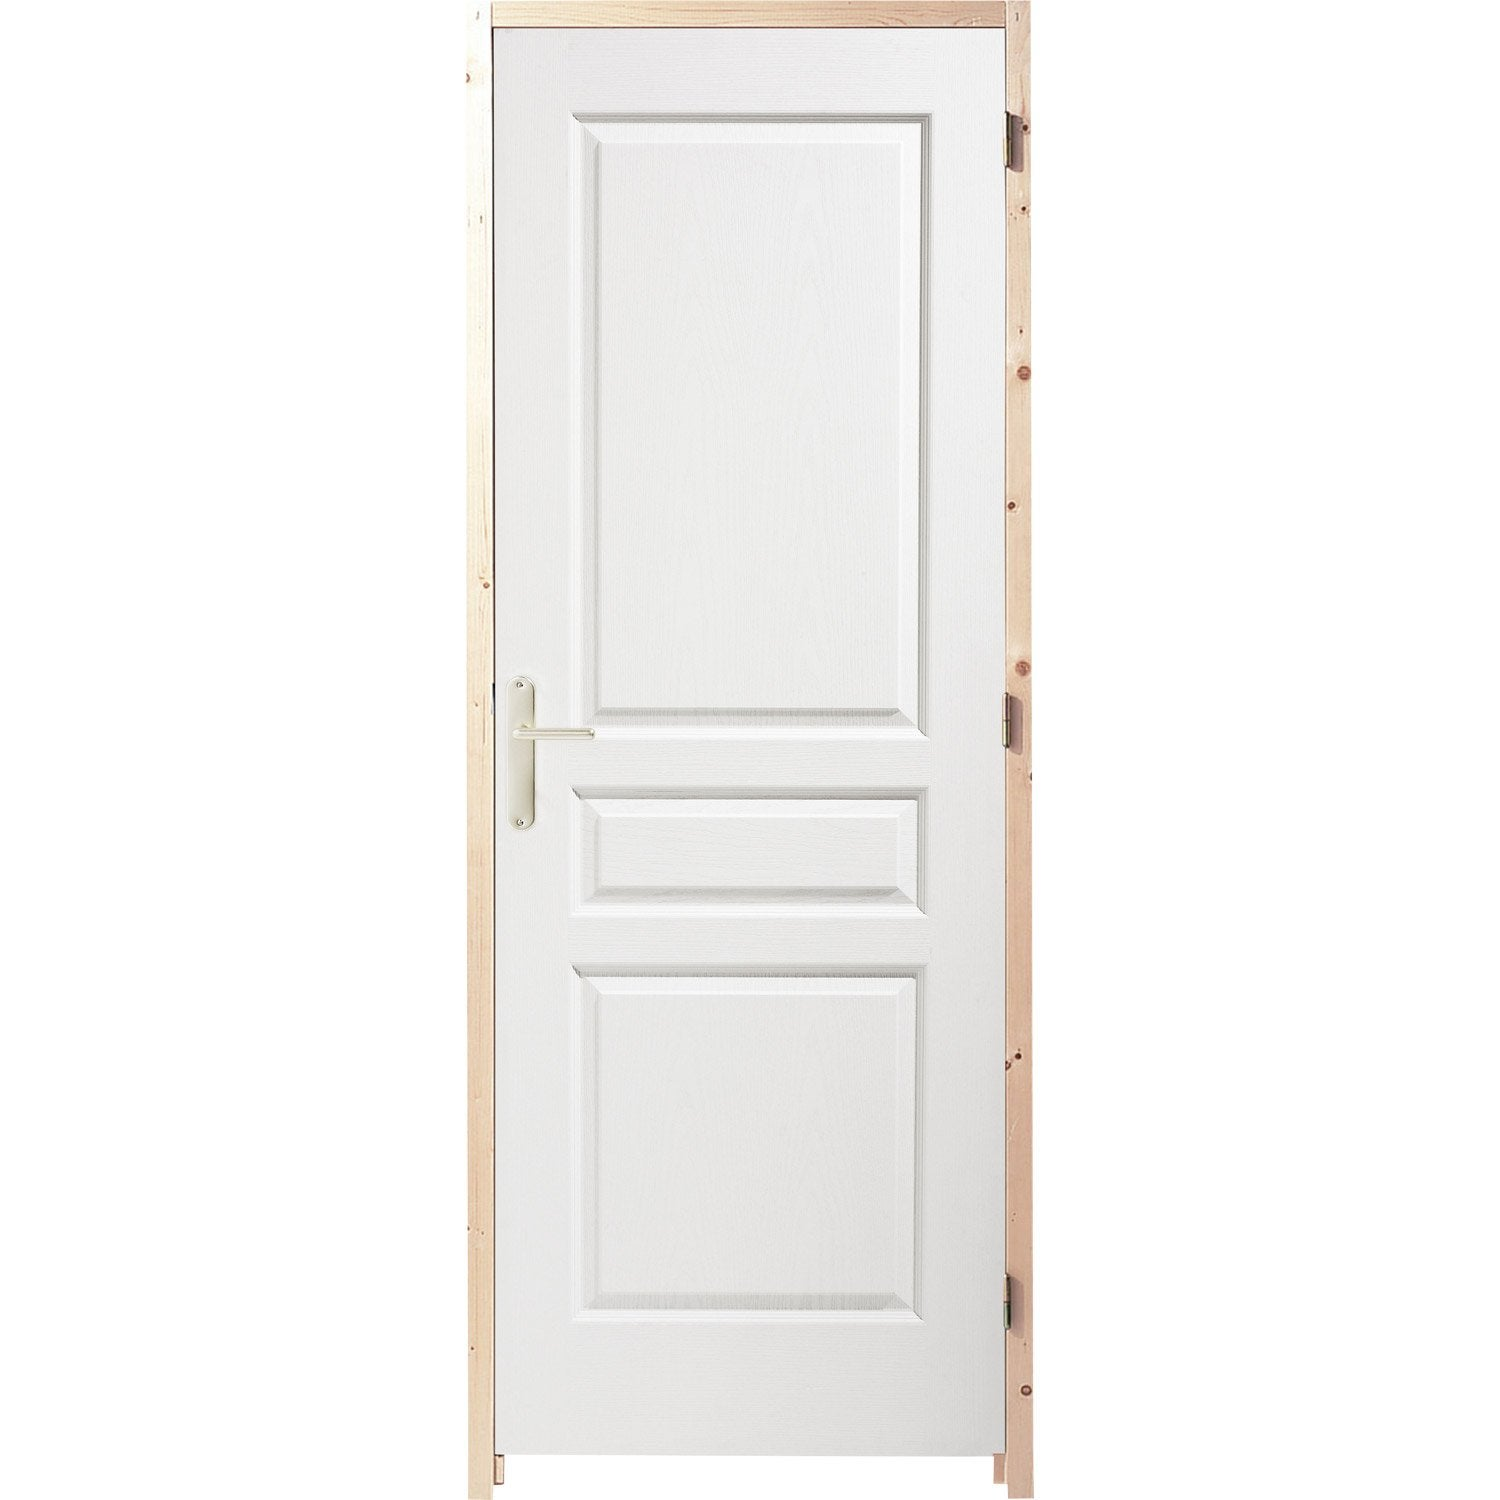 Bloc porte postform postform x cm poussant for Porte interieur point p